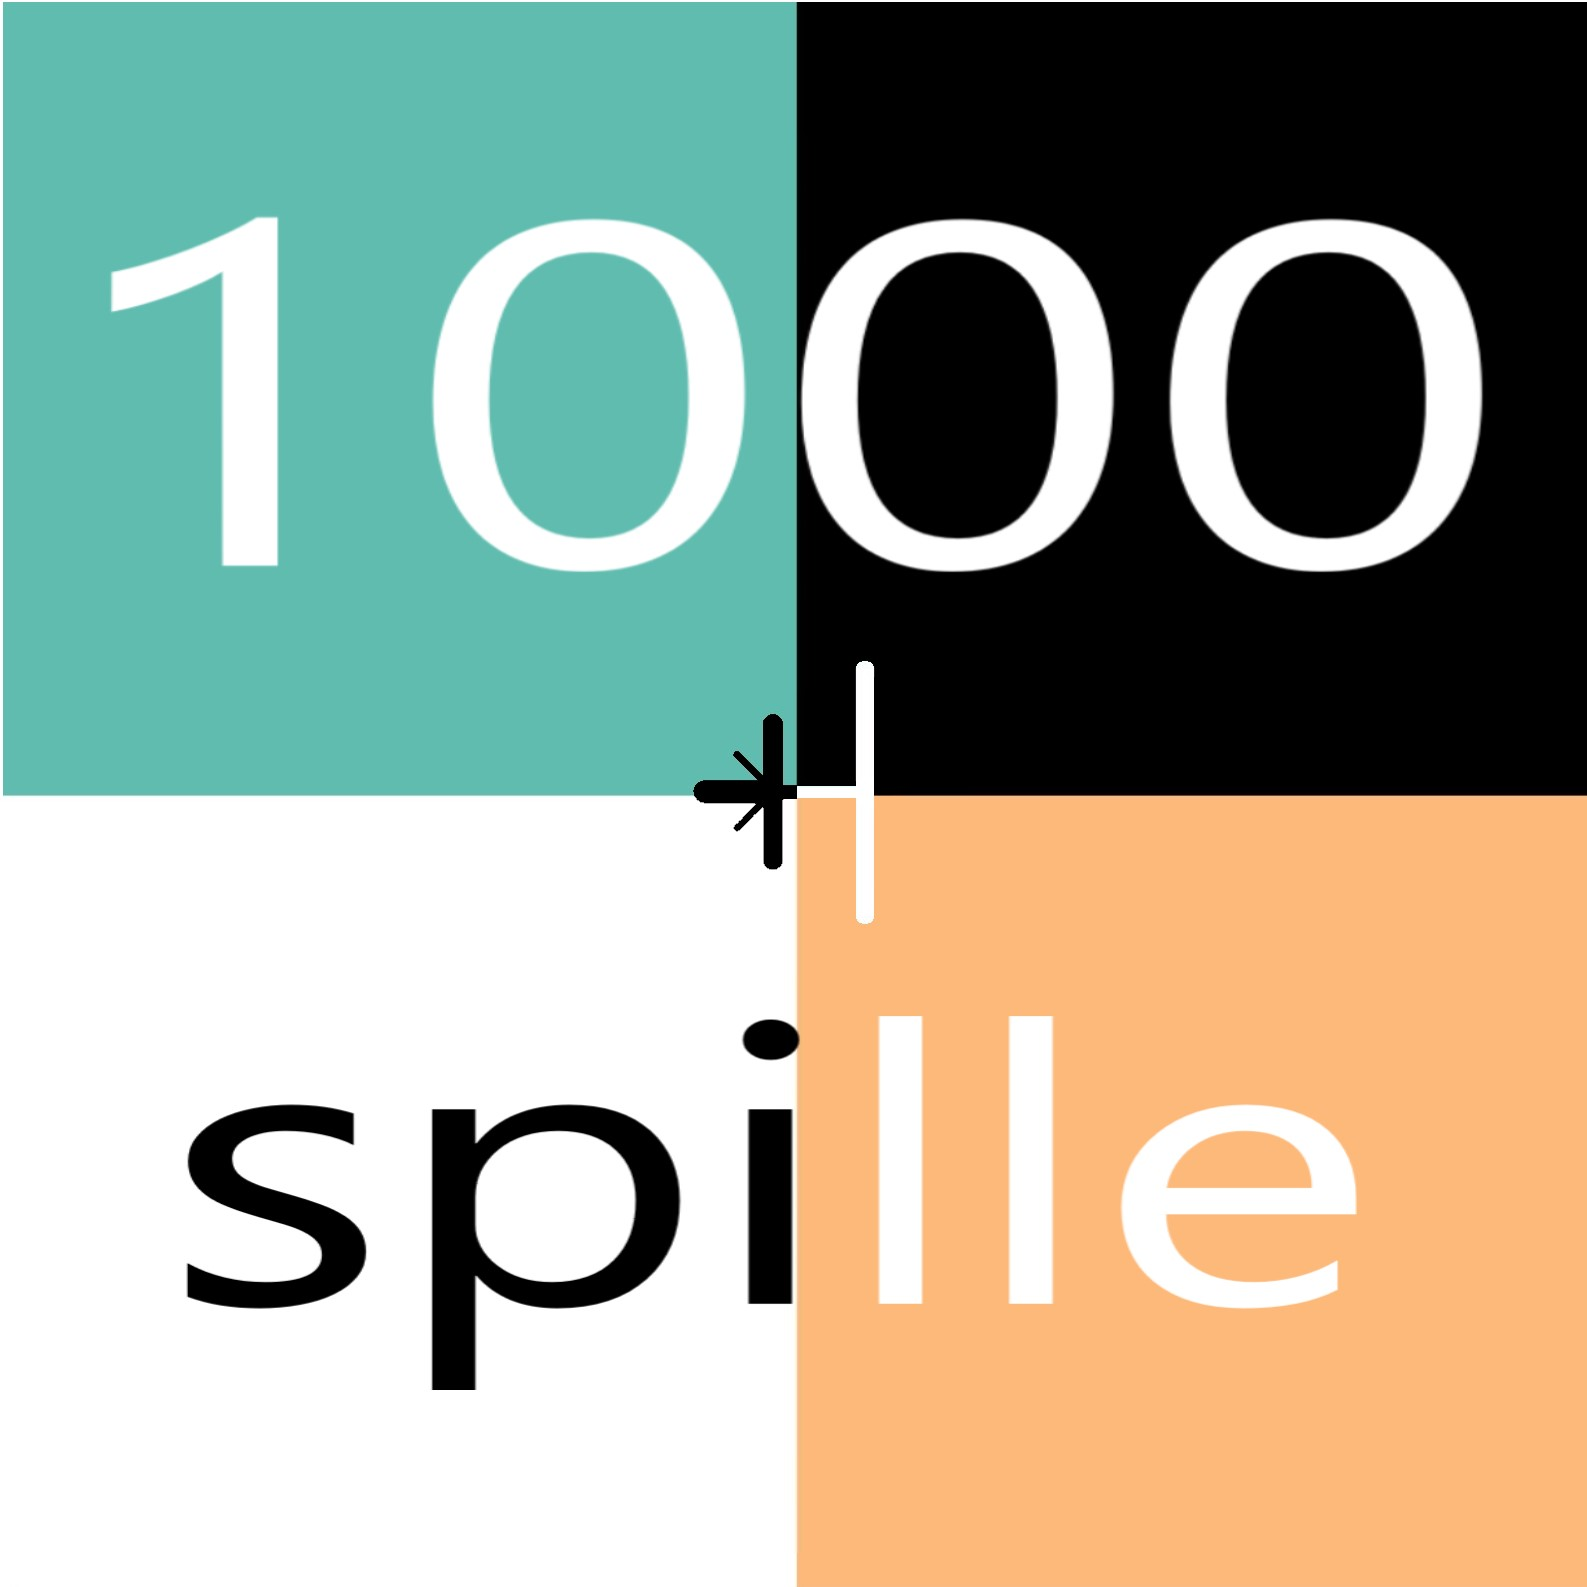 logo ufficiale 1000spille